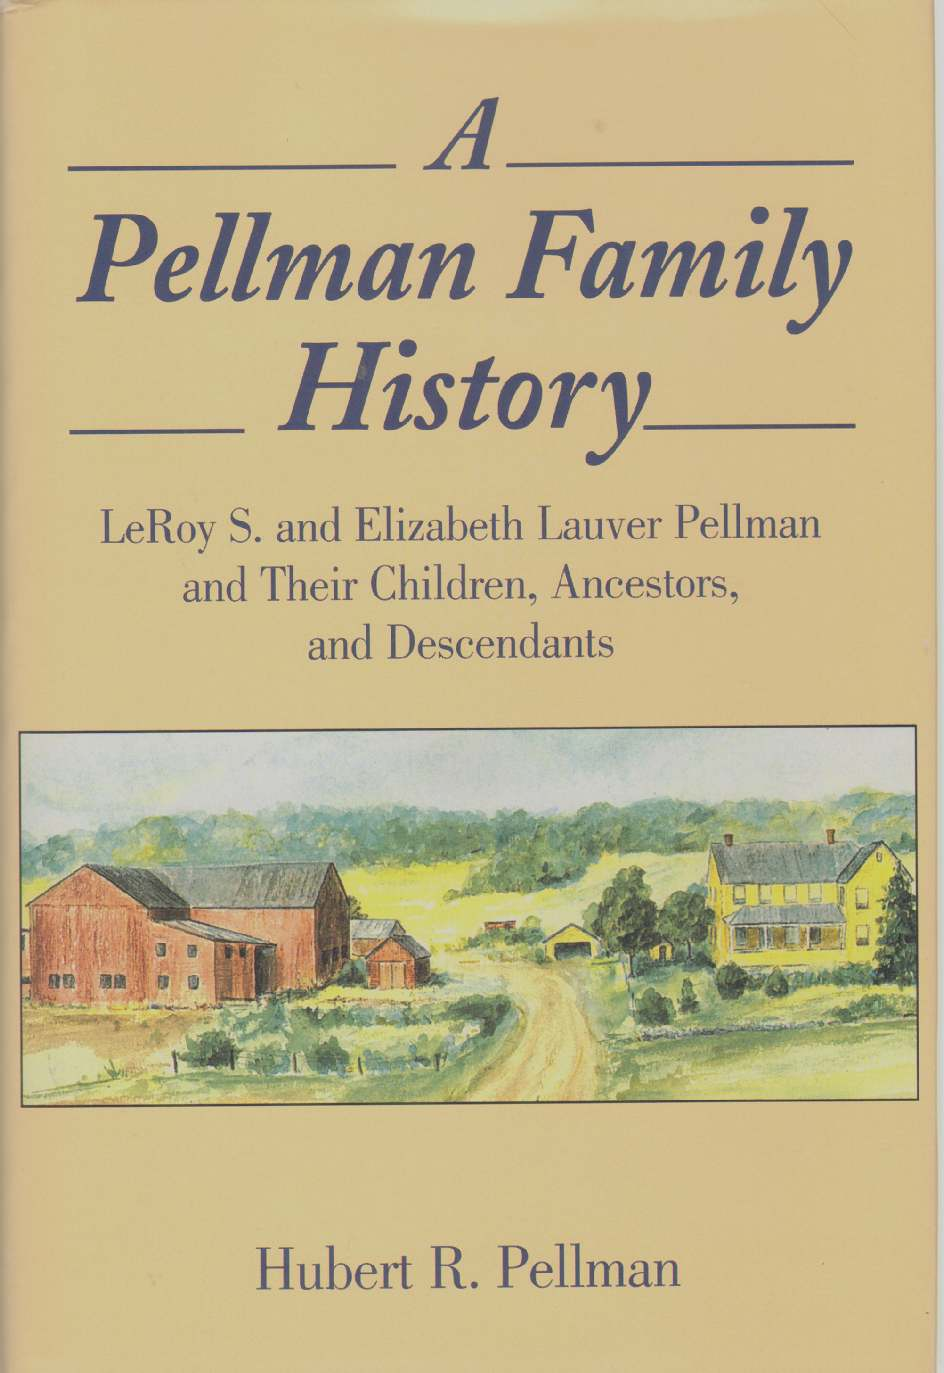 Image for A PELLMAN FAMILY HISTORY Leroy S. and Elizabeth Lauver Pellman and Their Children, Ancestors, and Descendants